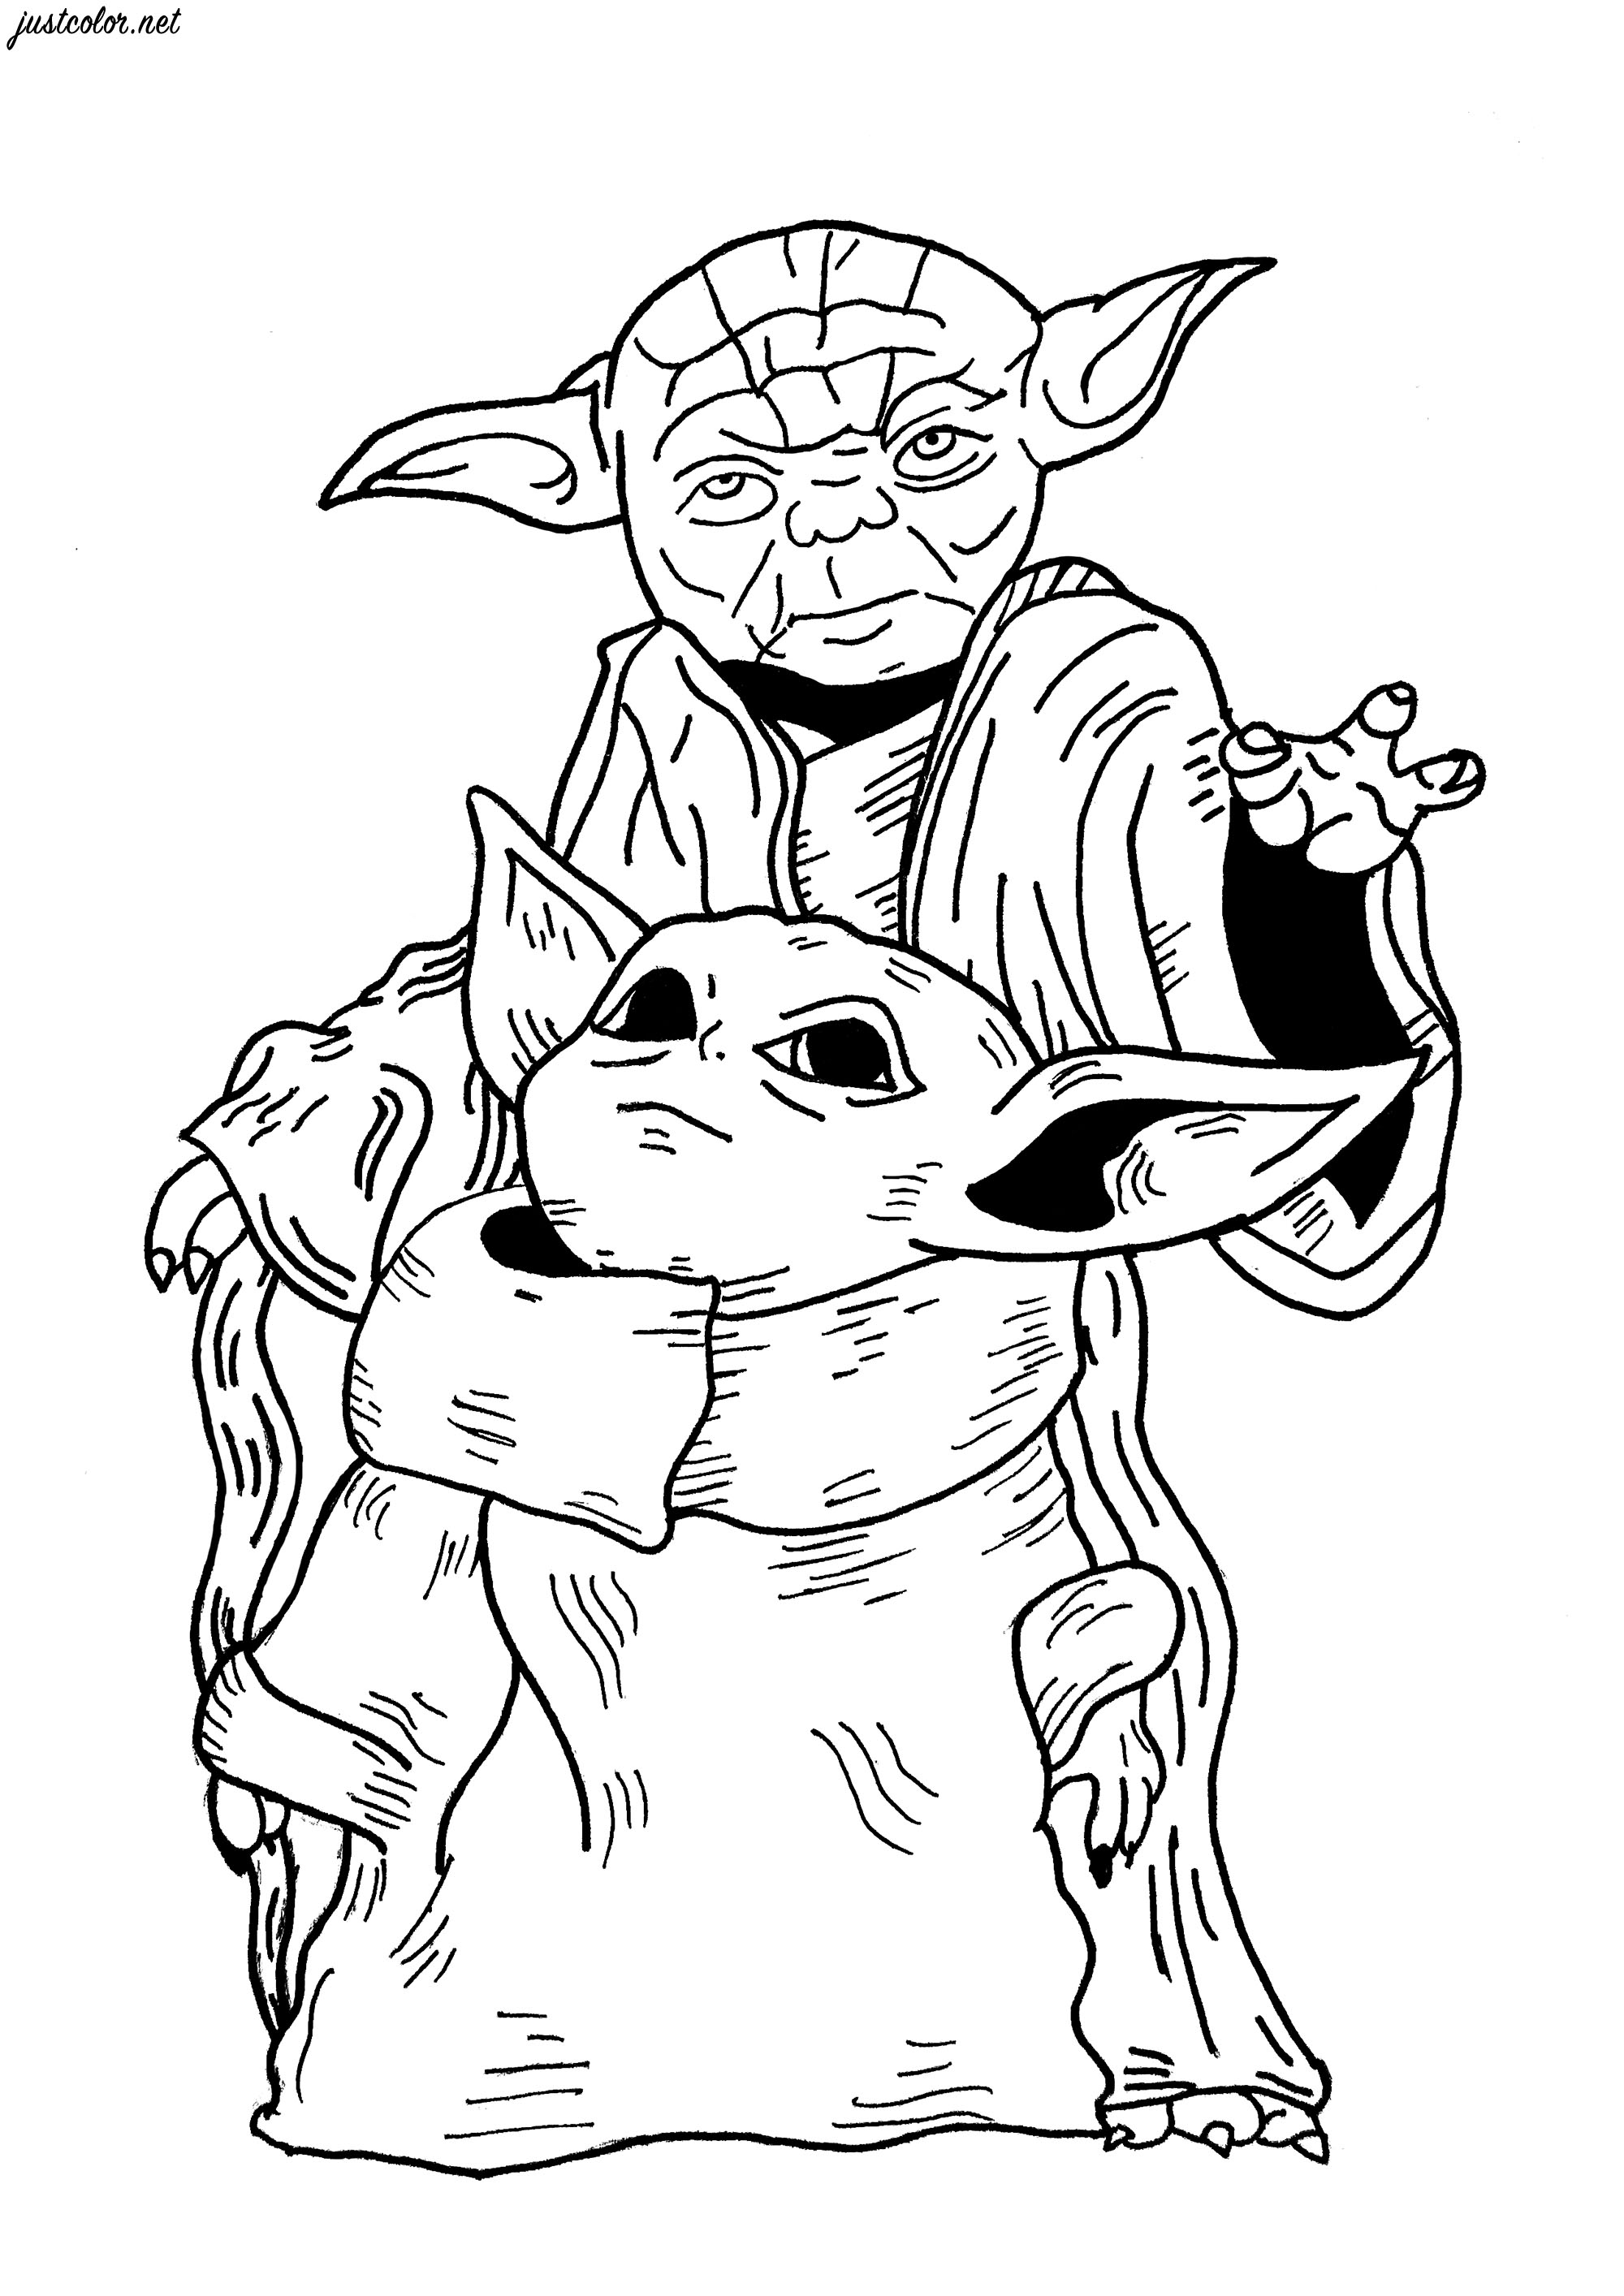 Free Baby Yoda Coloring Pages : coloring, pages, Movies, Adult, Coloring, Pages